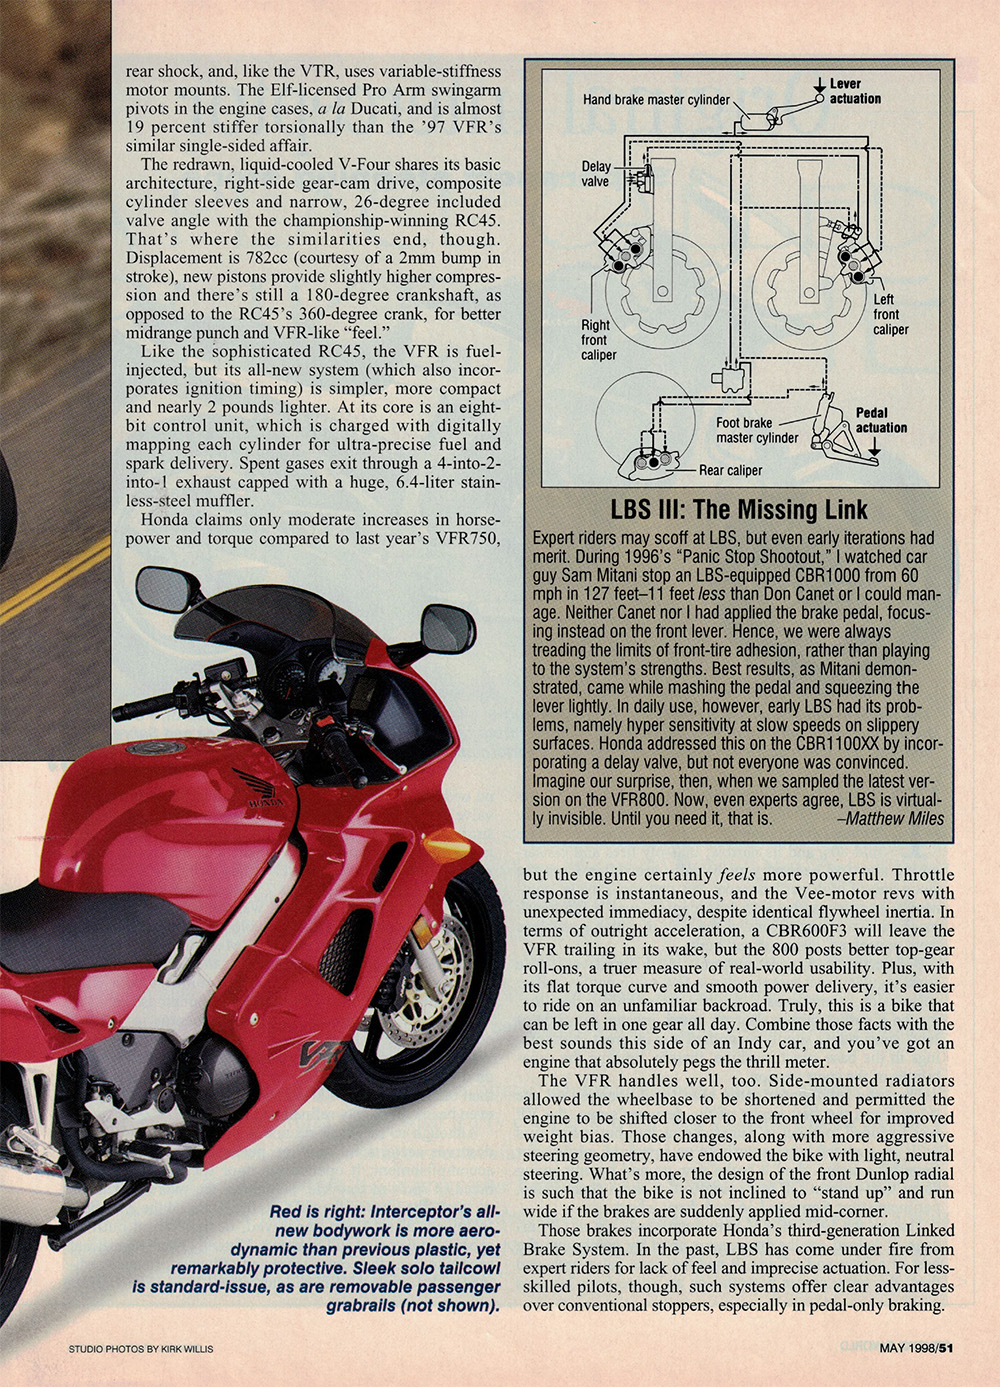 1998 Honda VFR800Fi road test 4.jpg